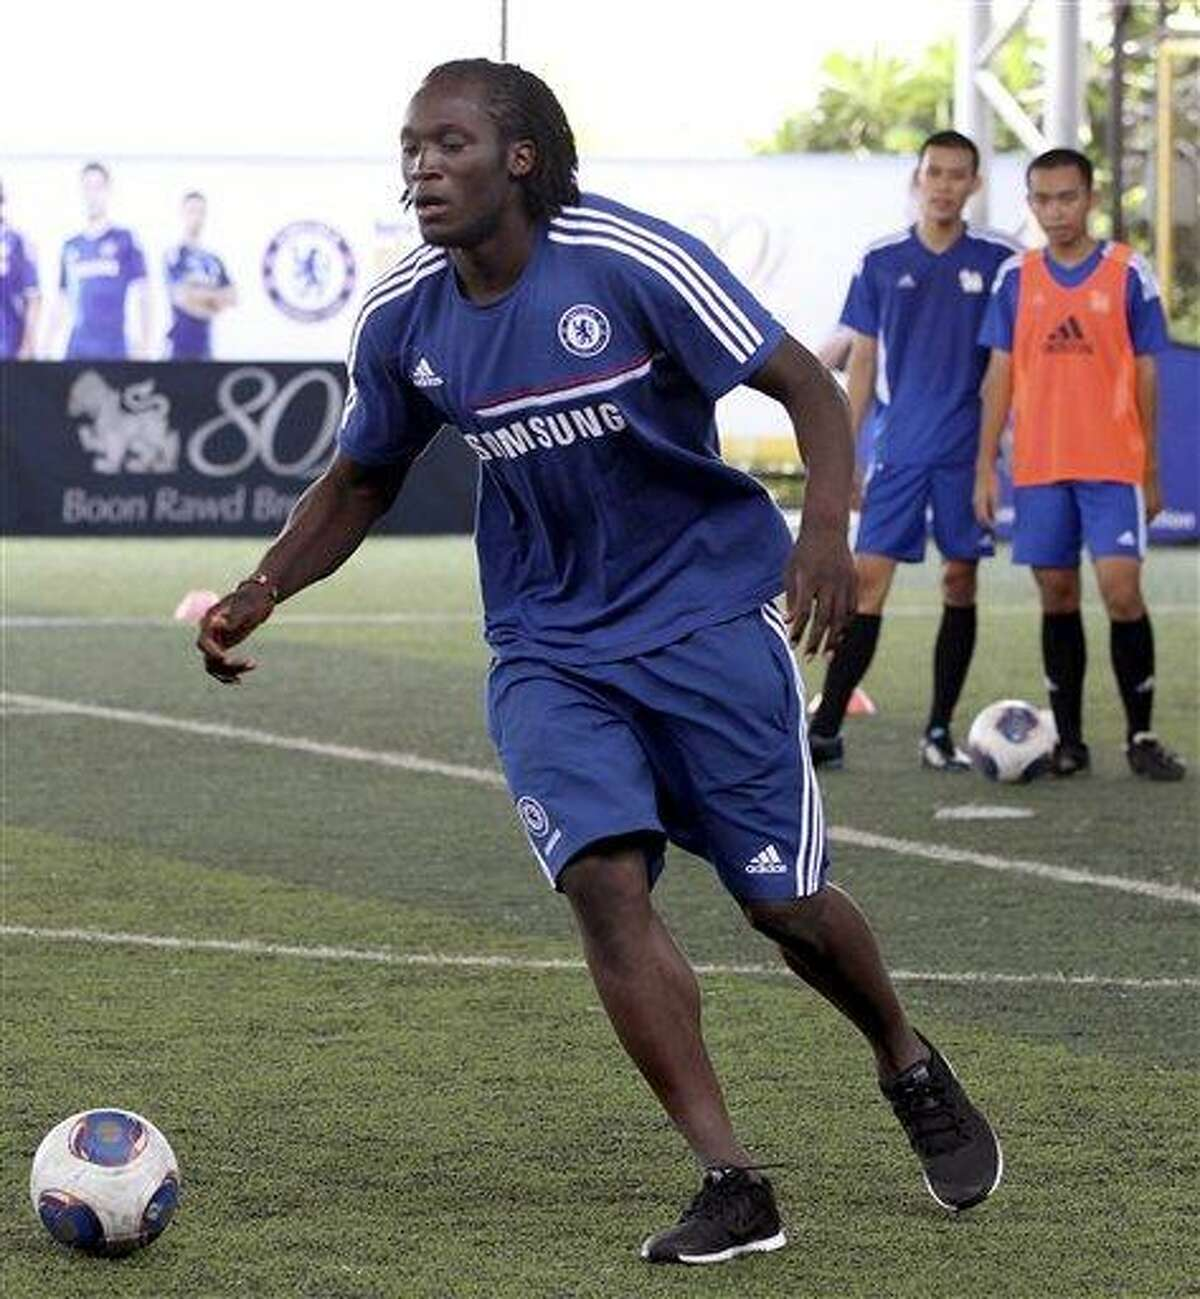 Romelu Lukaku of Chelsea shows his soccer skill to Thai youth during a soccer coaching clinic for Thai students in Bangkok, Thailand Monday, July 15, 2013. Chelsea will play against Thailand Singha All Star on Wednesday, July 17, 2013. (AP Photo/Apichart Weerawong)